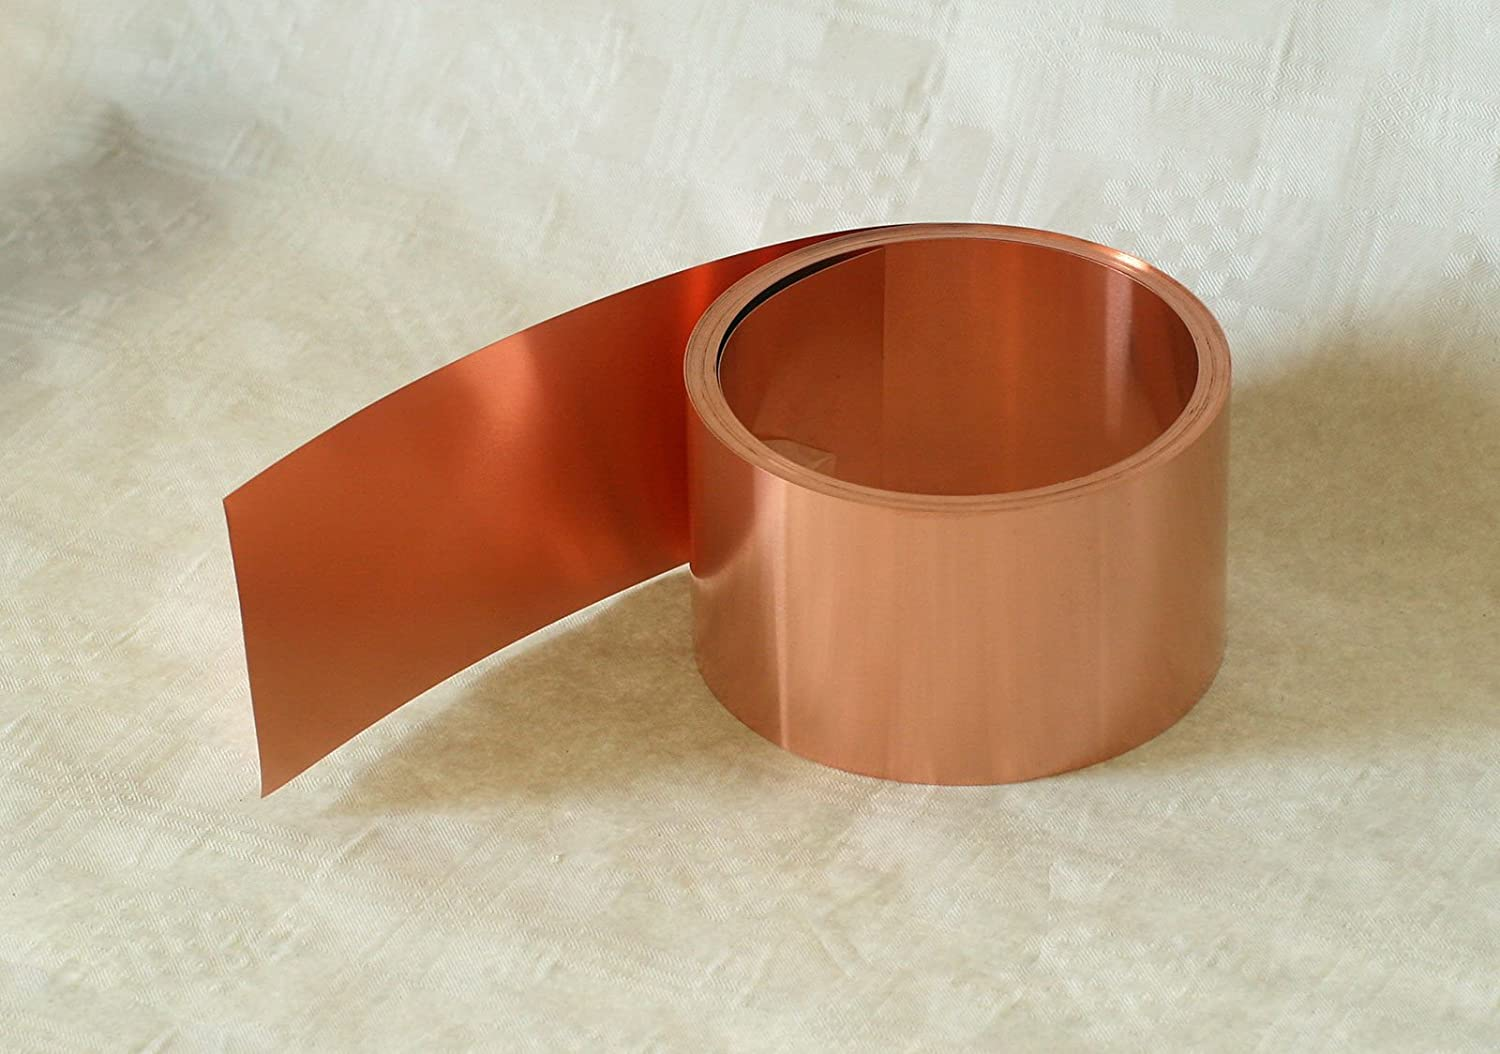 Copper tape 5  m roll, 0,1 mm x 40 mm, 1 Blechmaennle